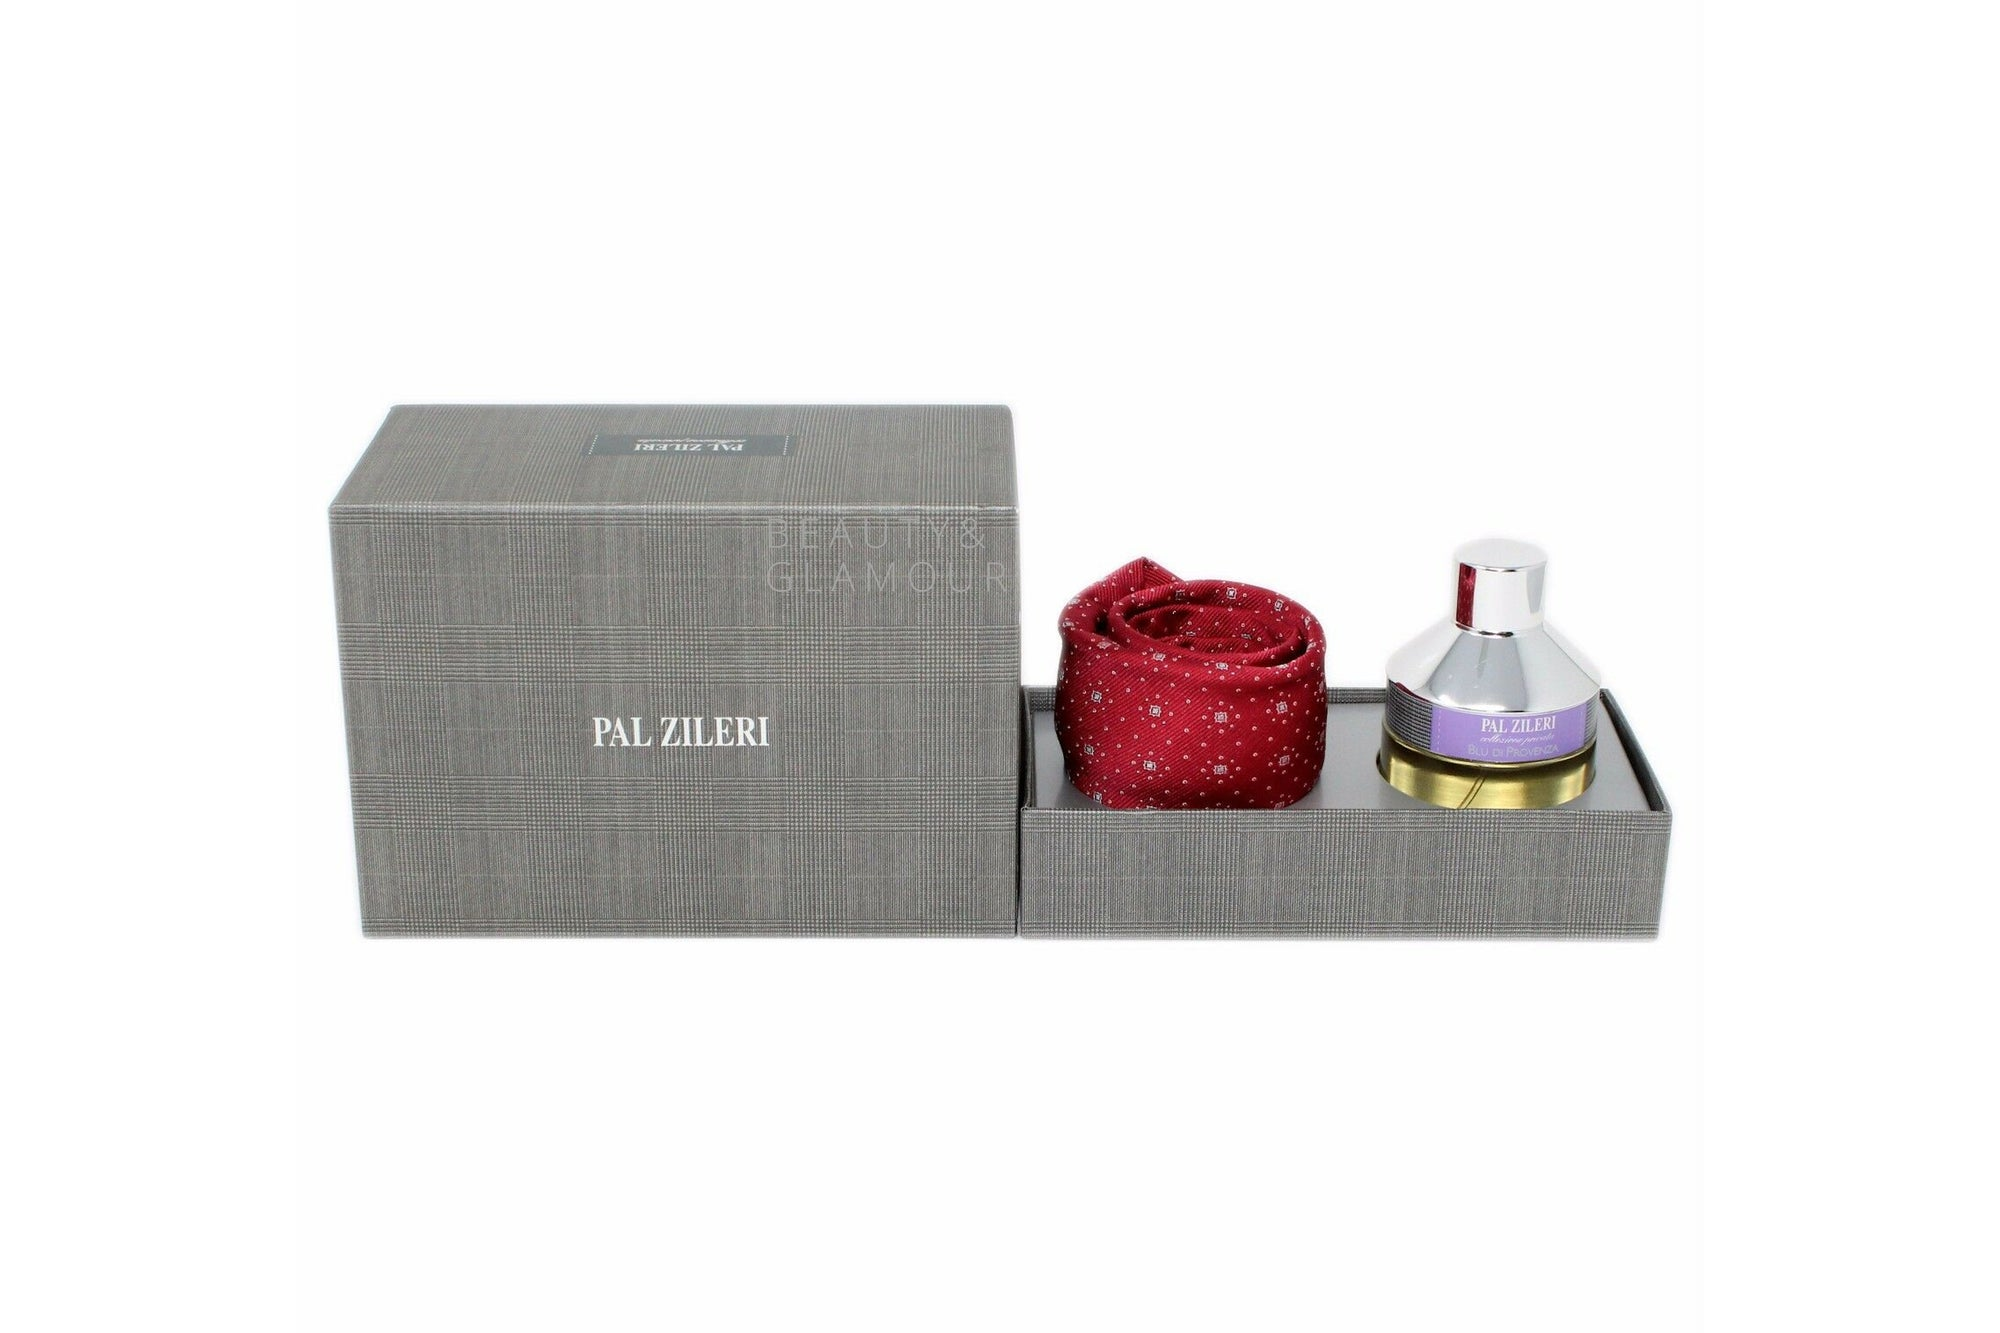 PAL ZILERI BLU DI PROVENZA EAU DE TOILETTE SPRAY 100ML